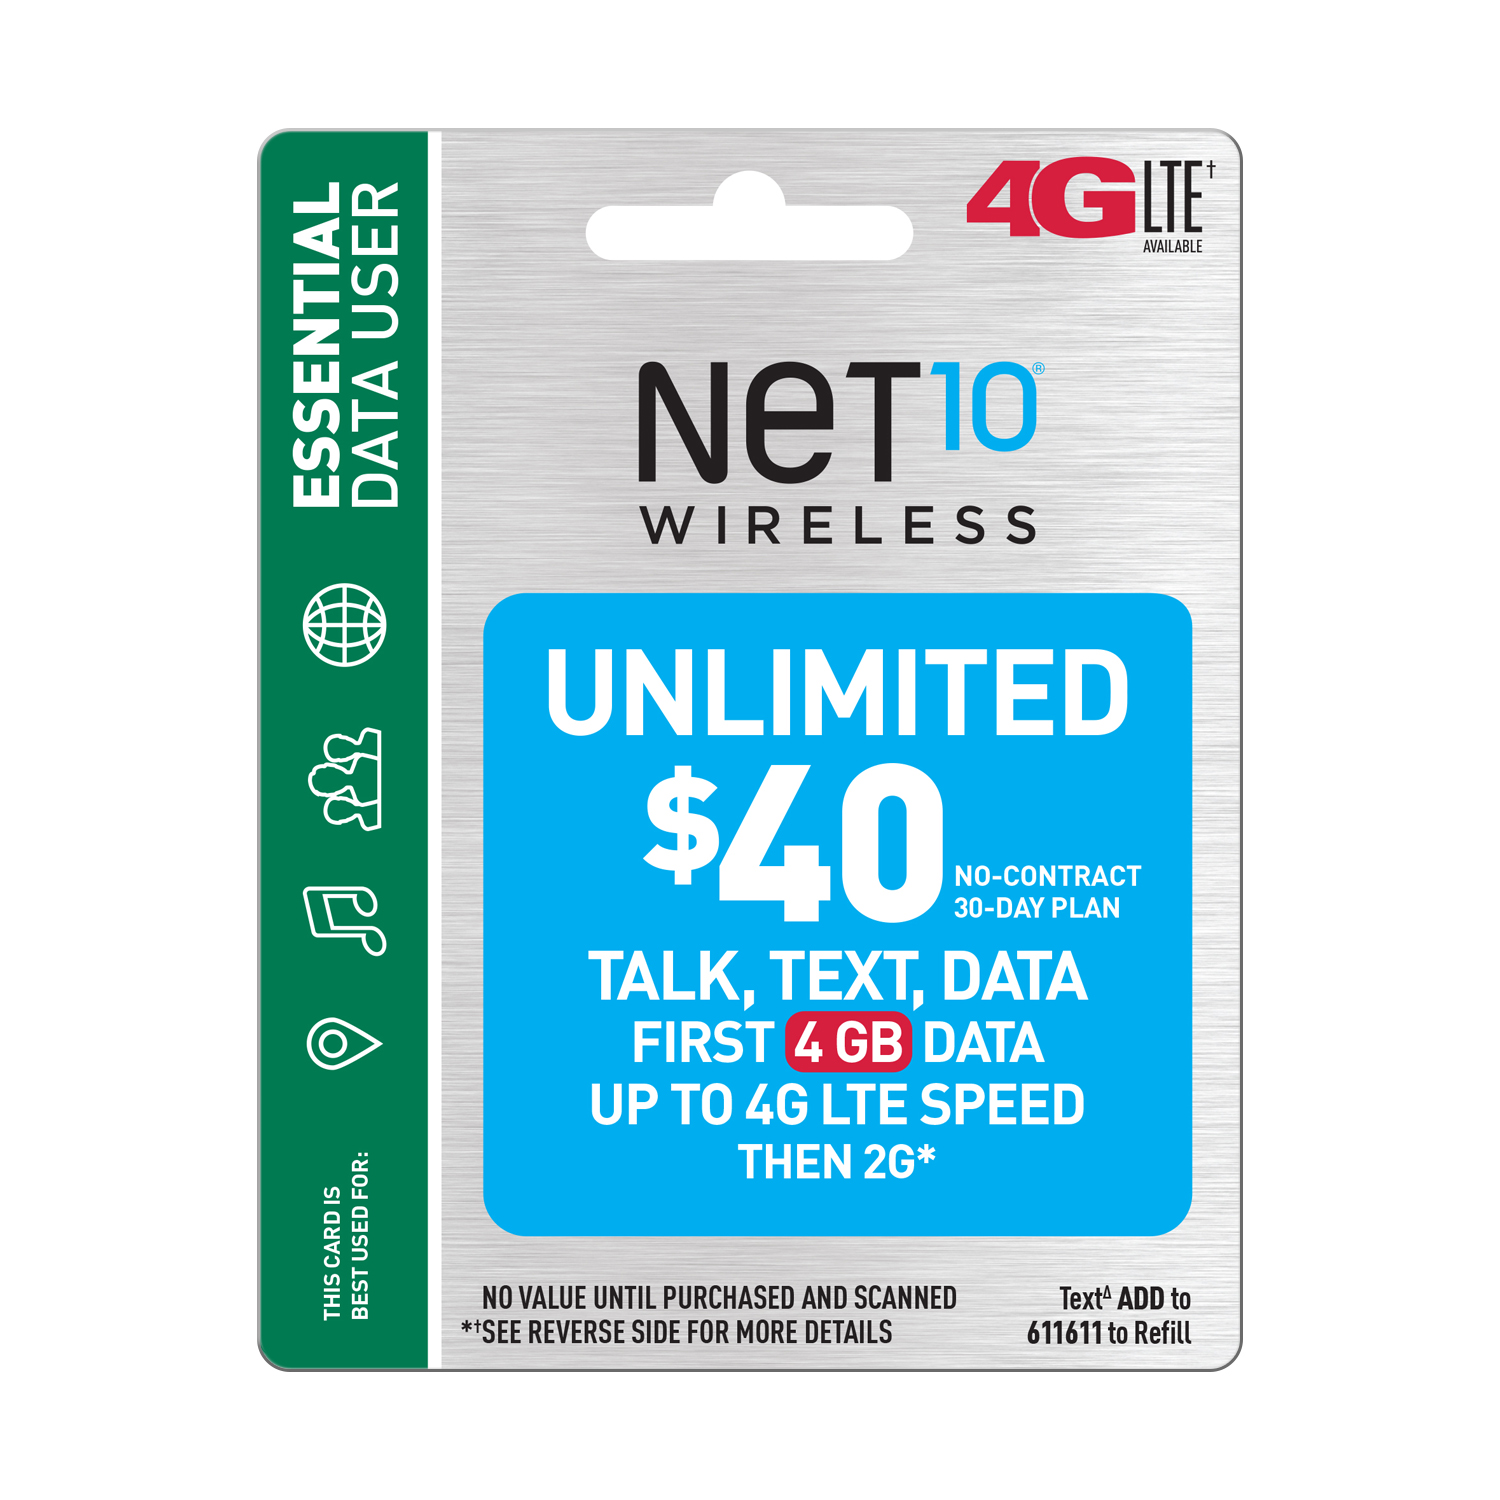 Net10 $40 Unlimited 30 Day Plan (4GB of data at high speed, then 2G*) (Email Delivery) Double Data Promo Available***